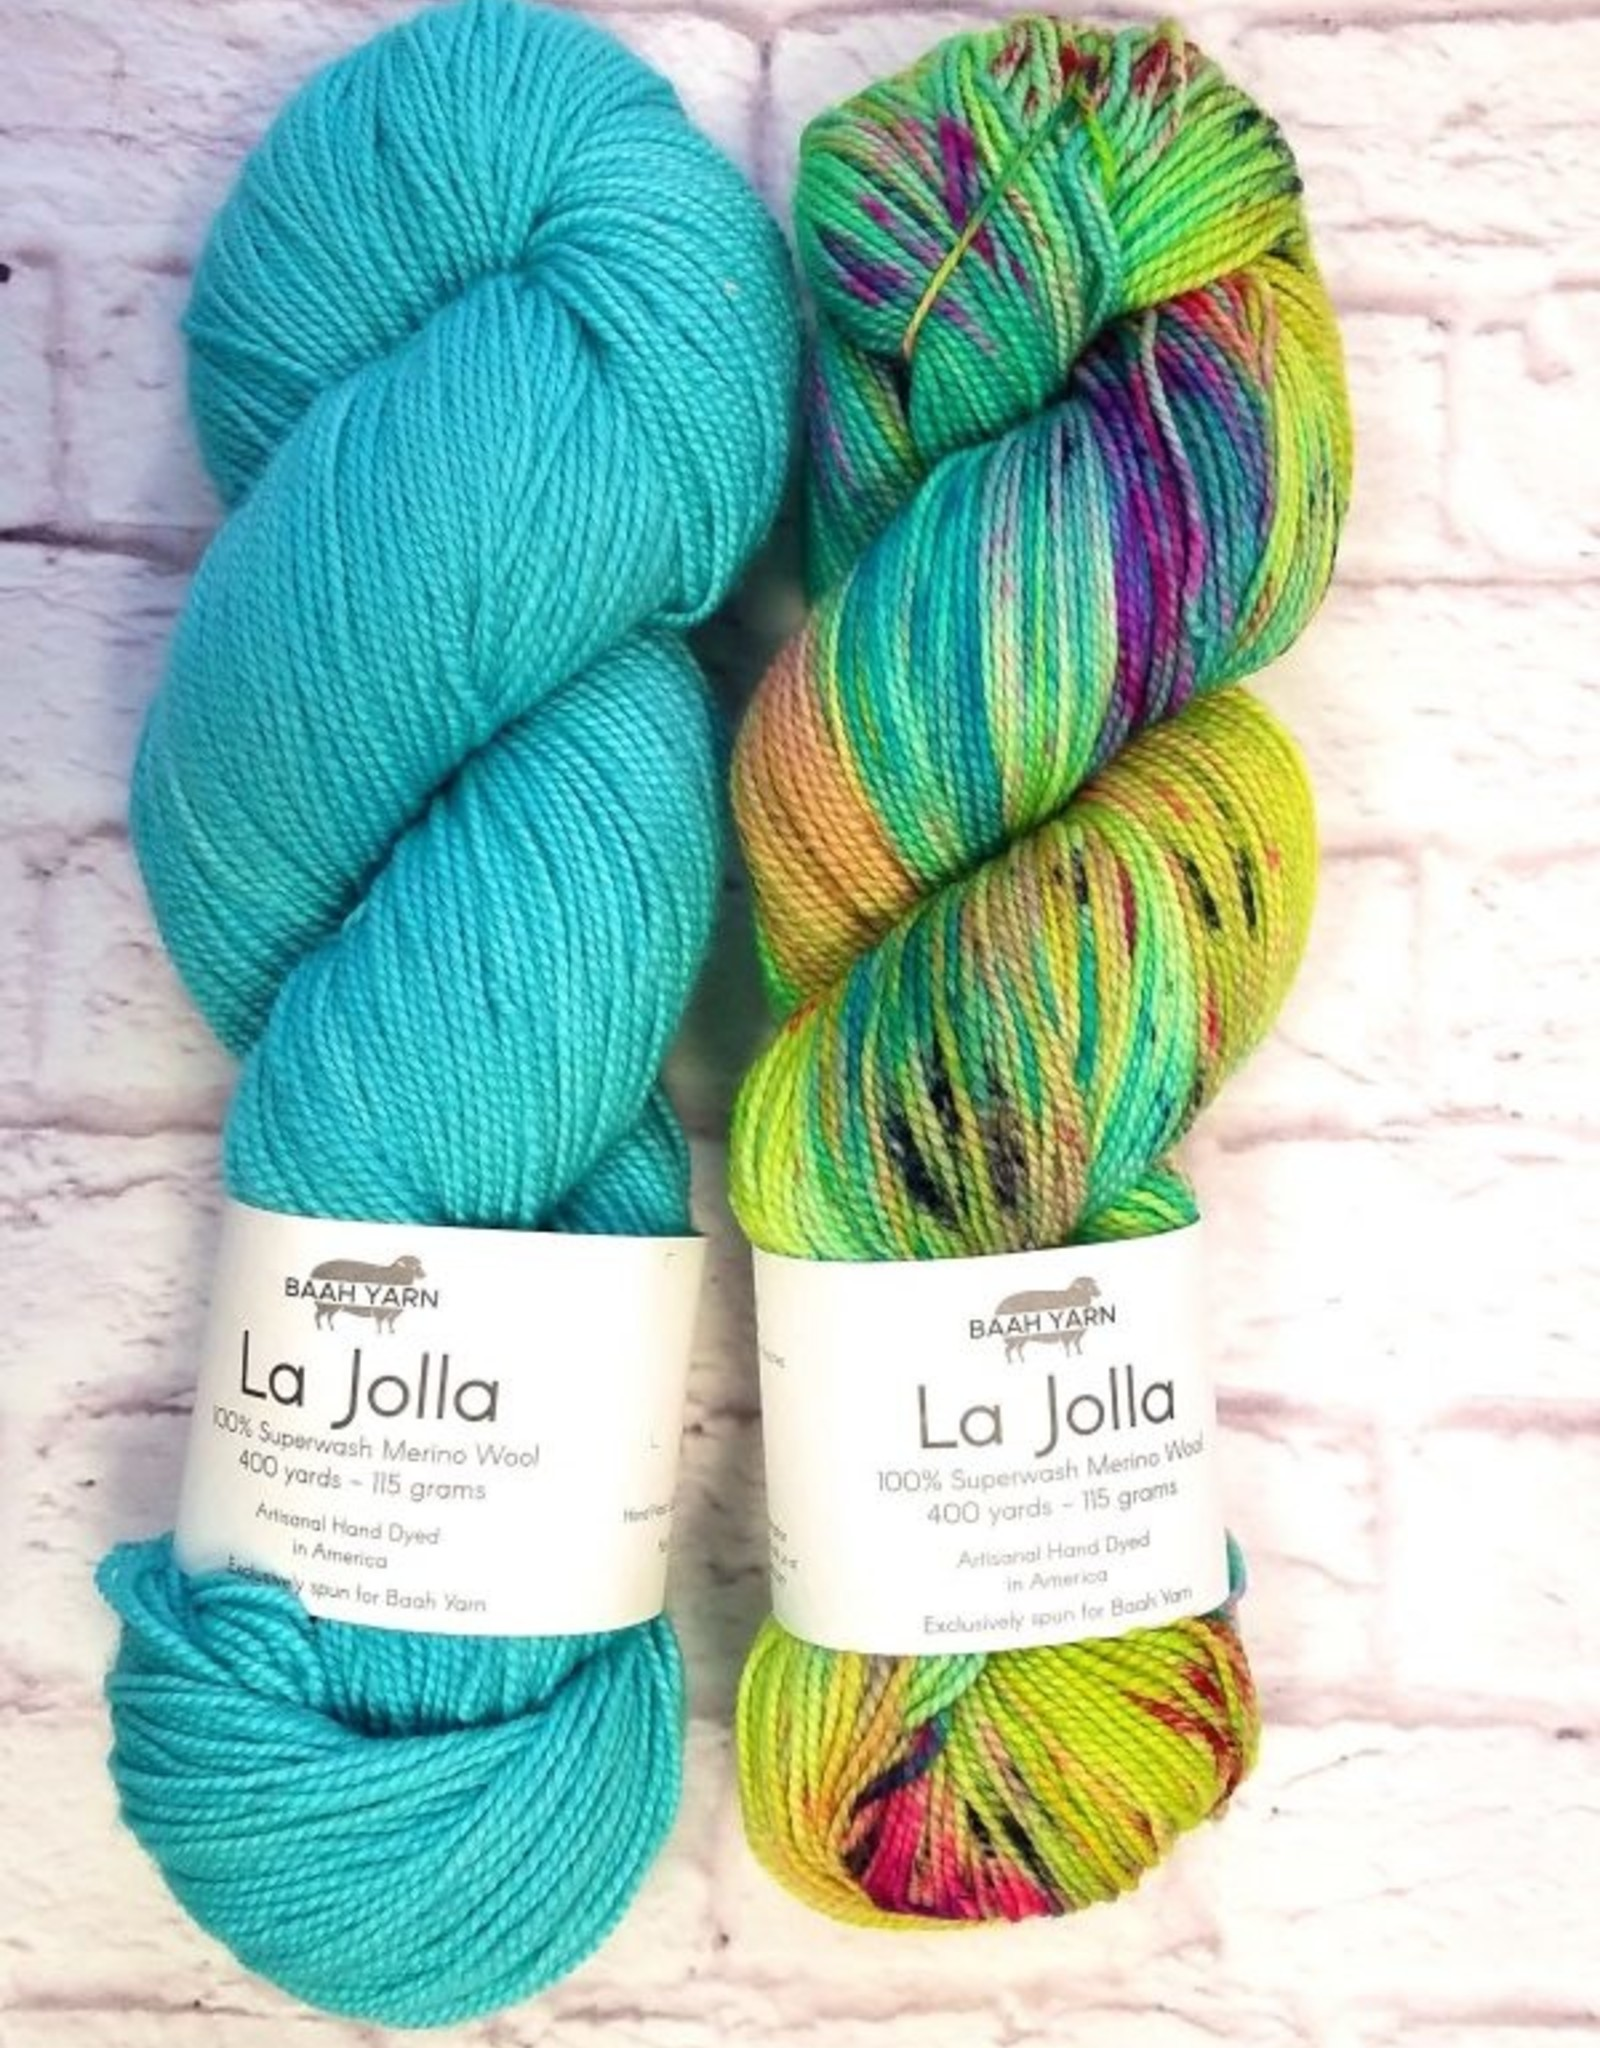 Baah Yarns Breathe and Hope Kit from Baah Yarns